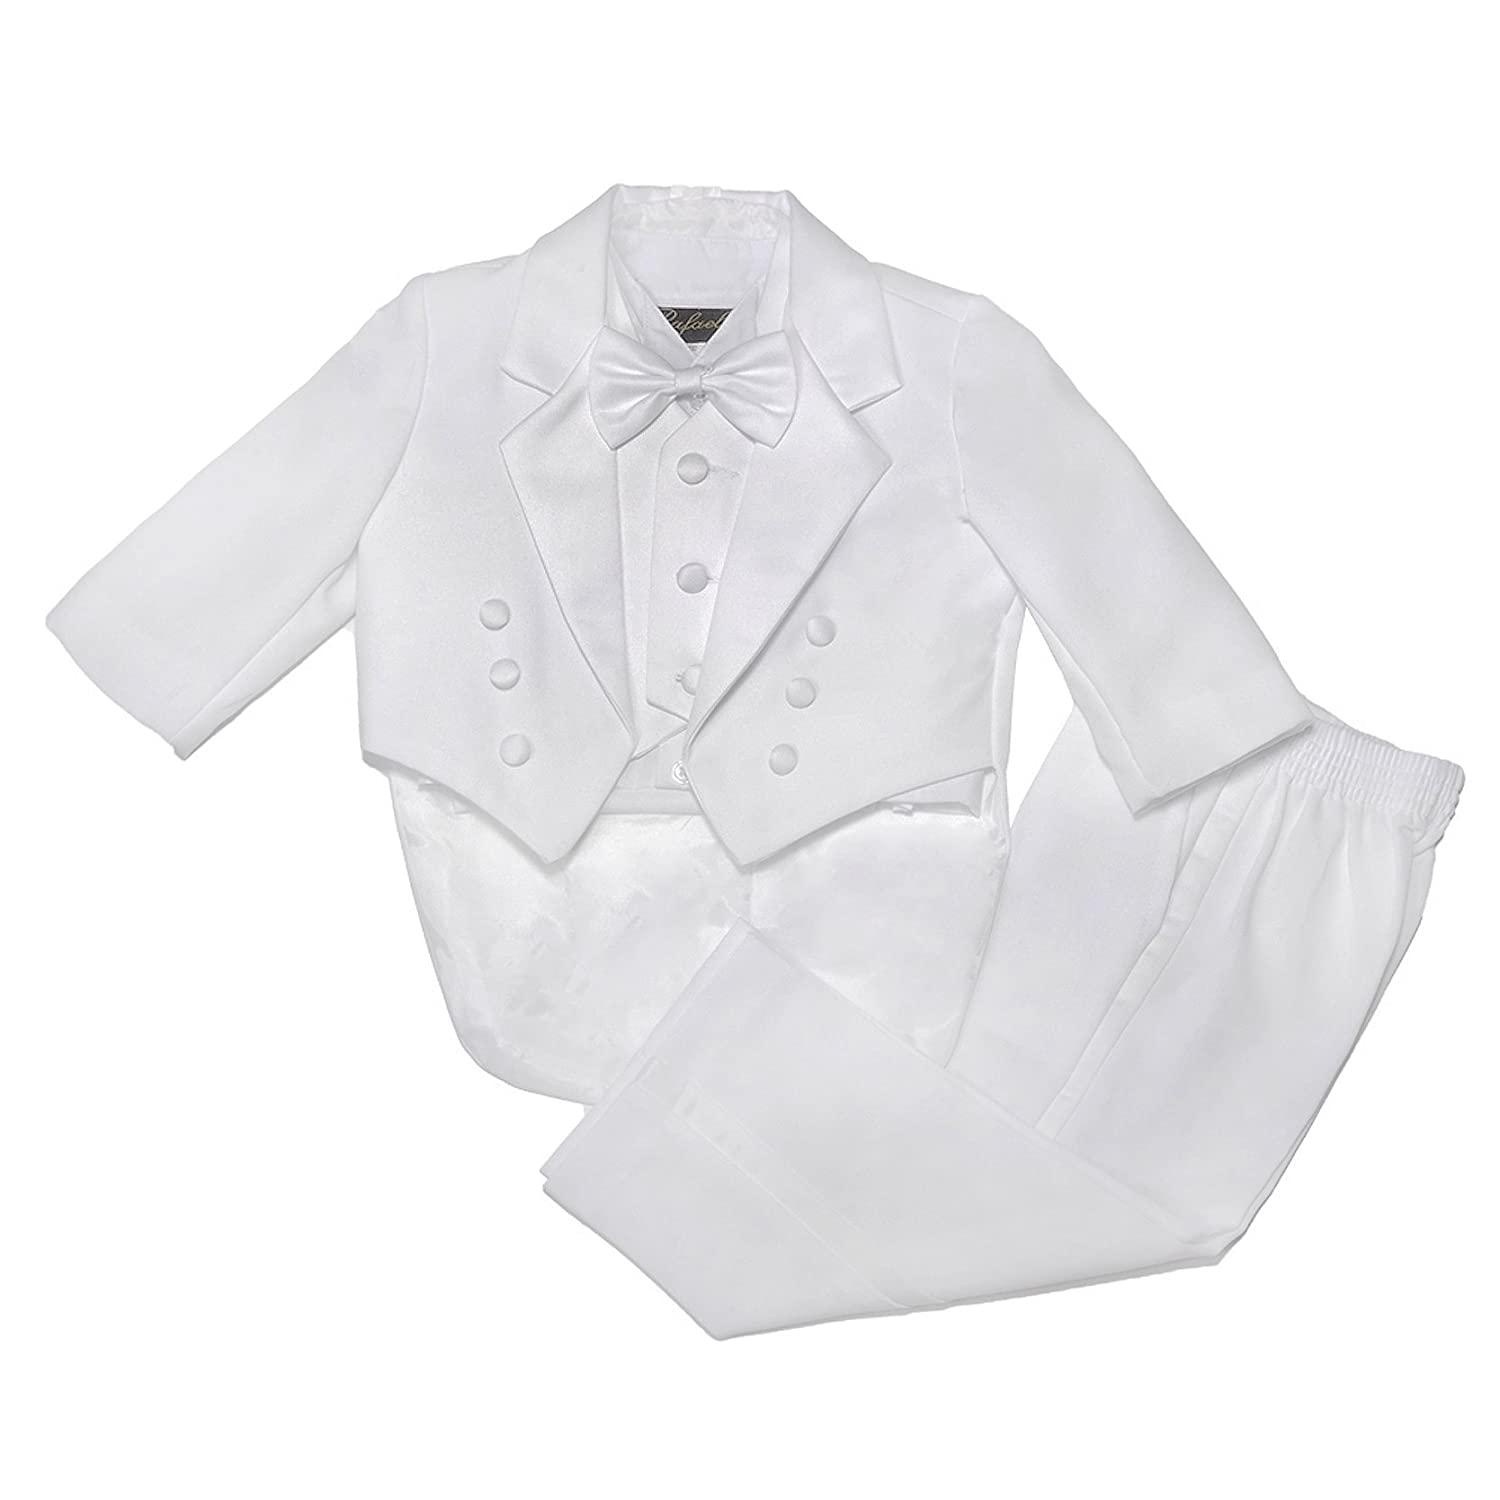 NancyAugust Classic Baby Boy to Teen Formal Tuxedo with Tail in White GUPWHTTUX10B